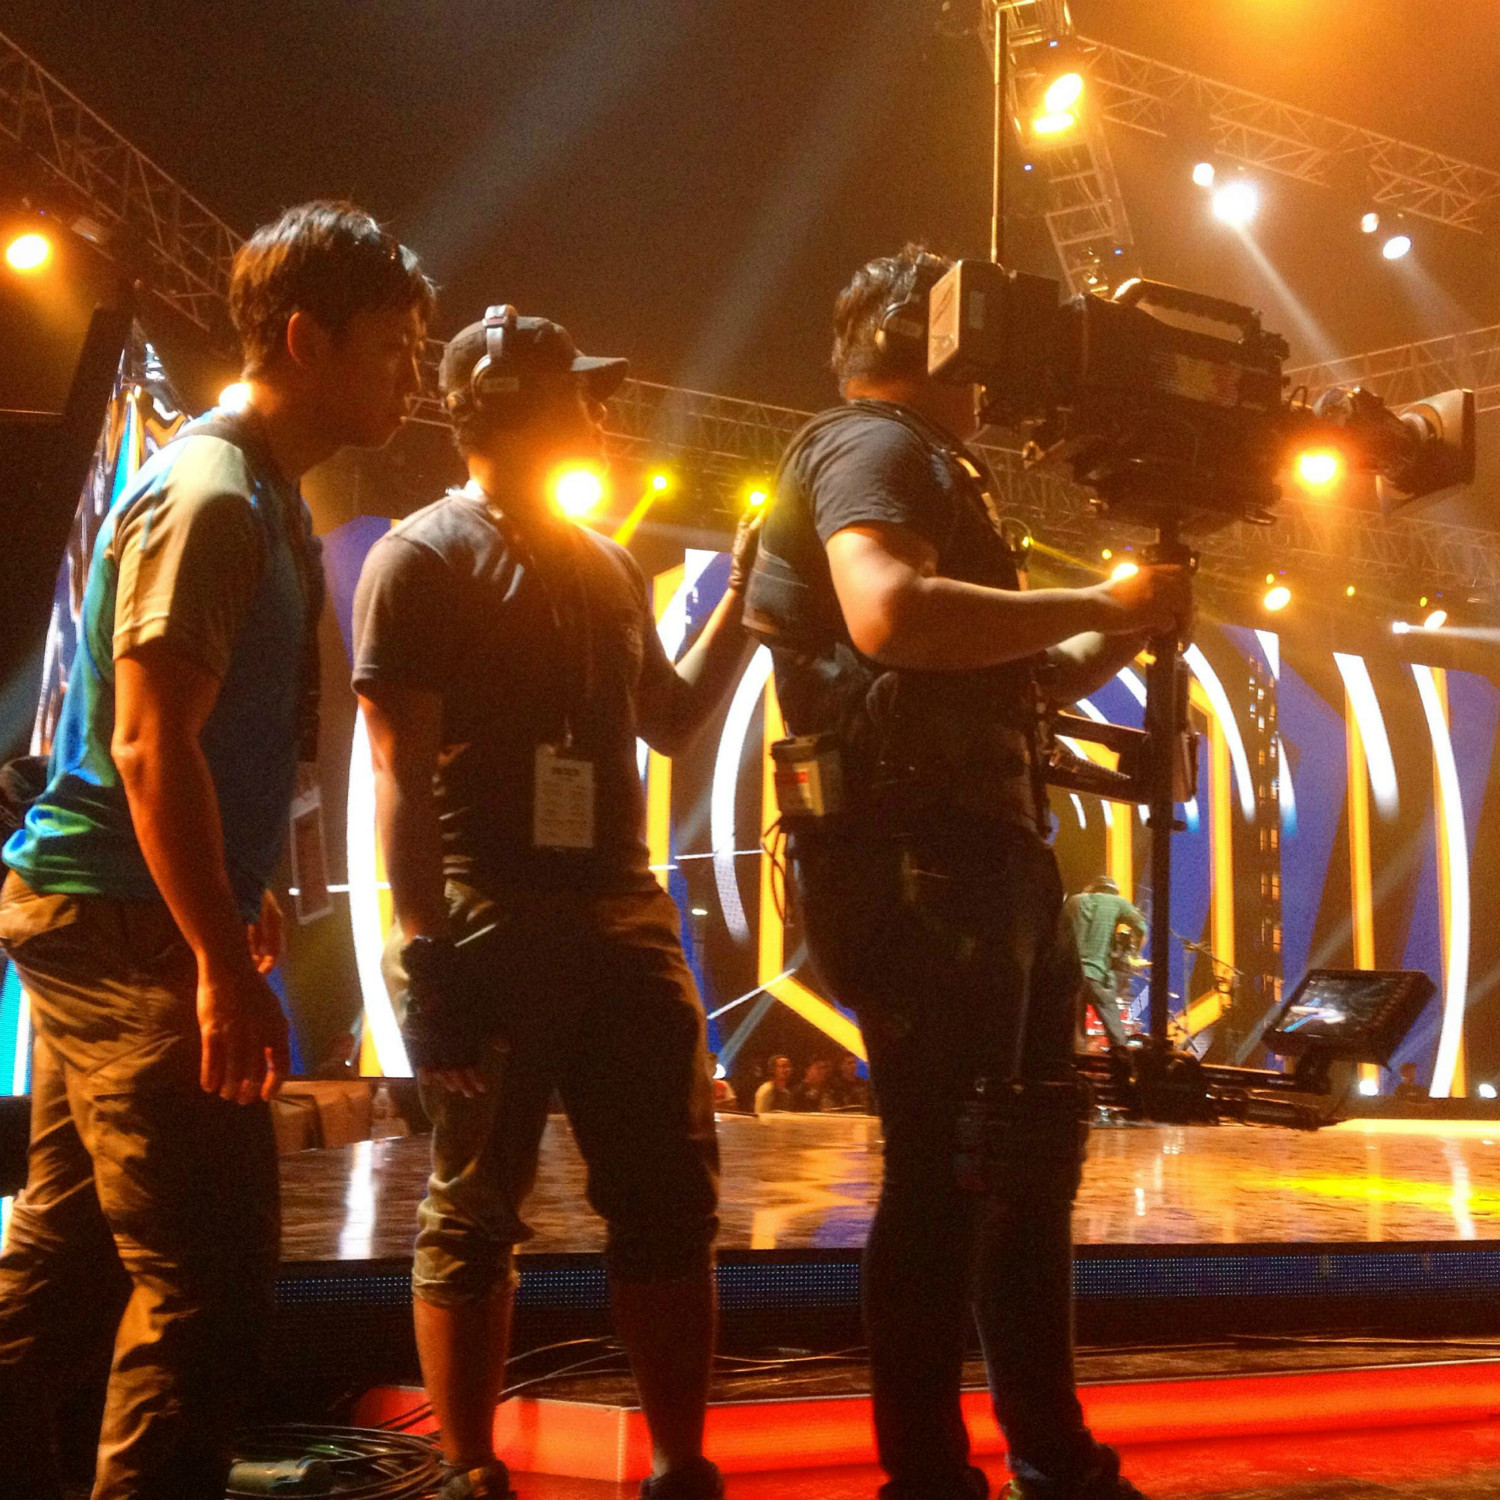 Keeping a close eye on my Steadicam team as we prepare to go live on national TV for Anugerah Juara Lagu.